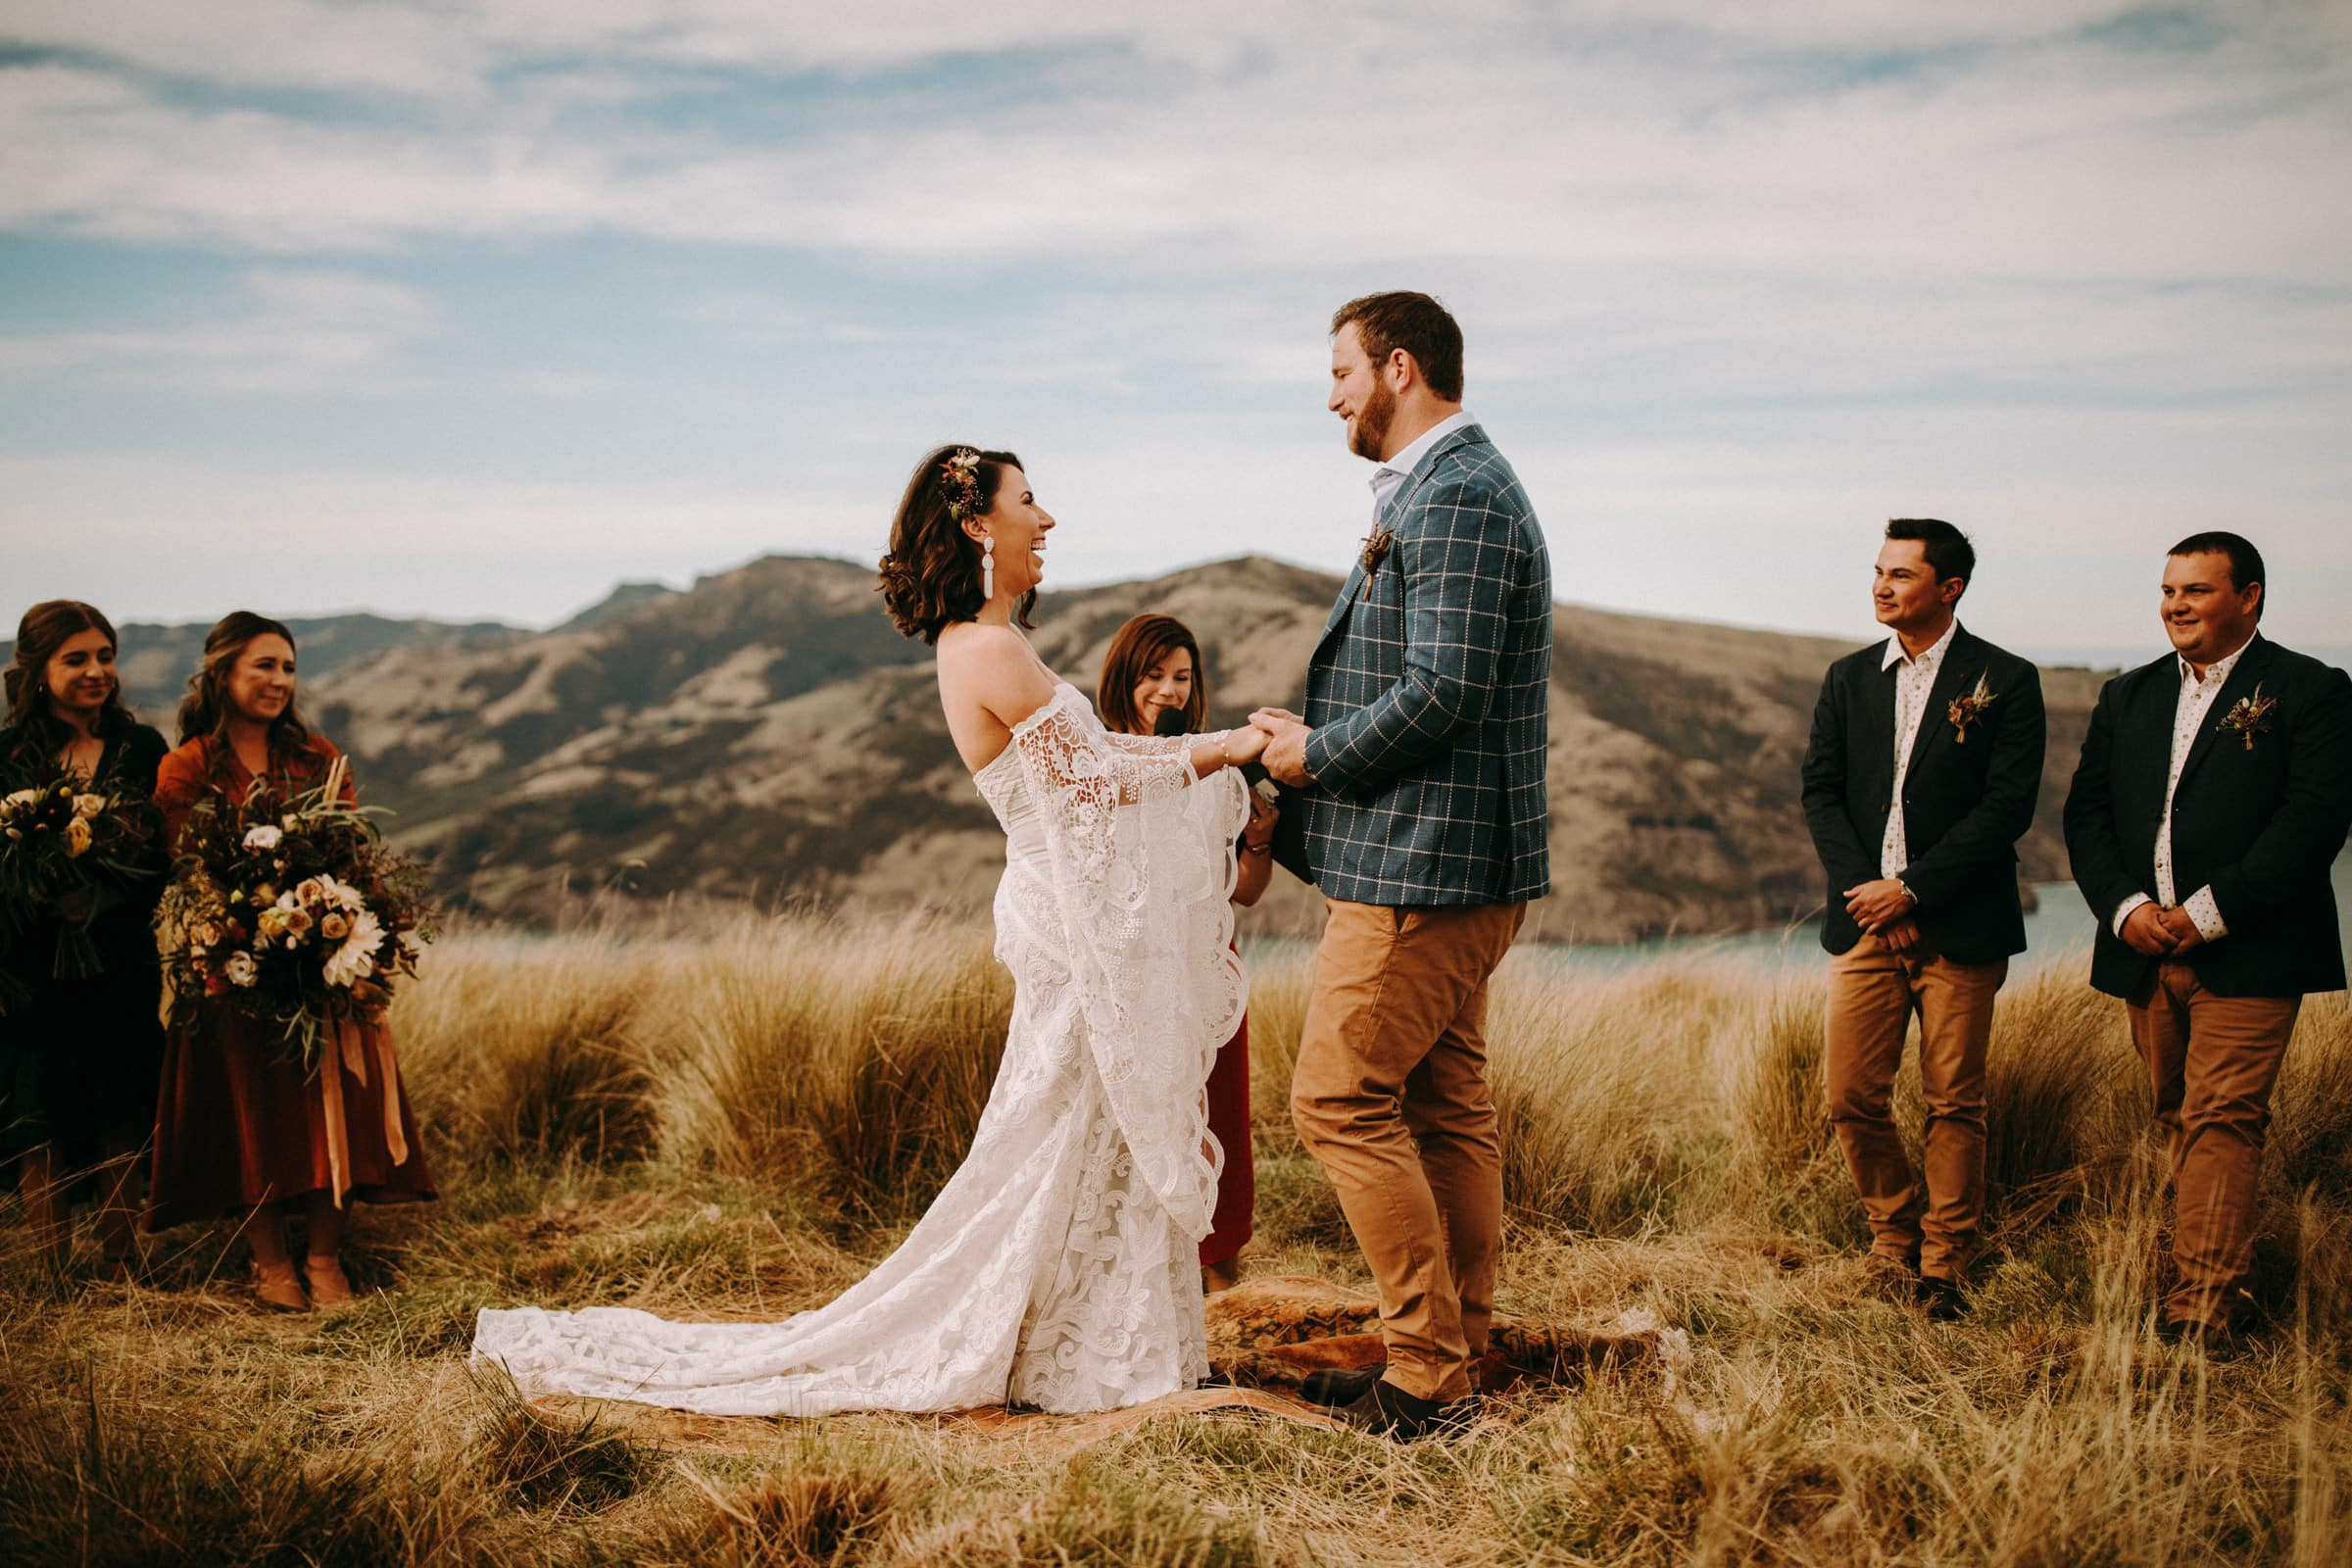 A bride and her groom are holding hands and standing in front of the ocean and mountains.